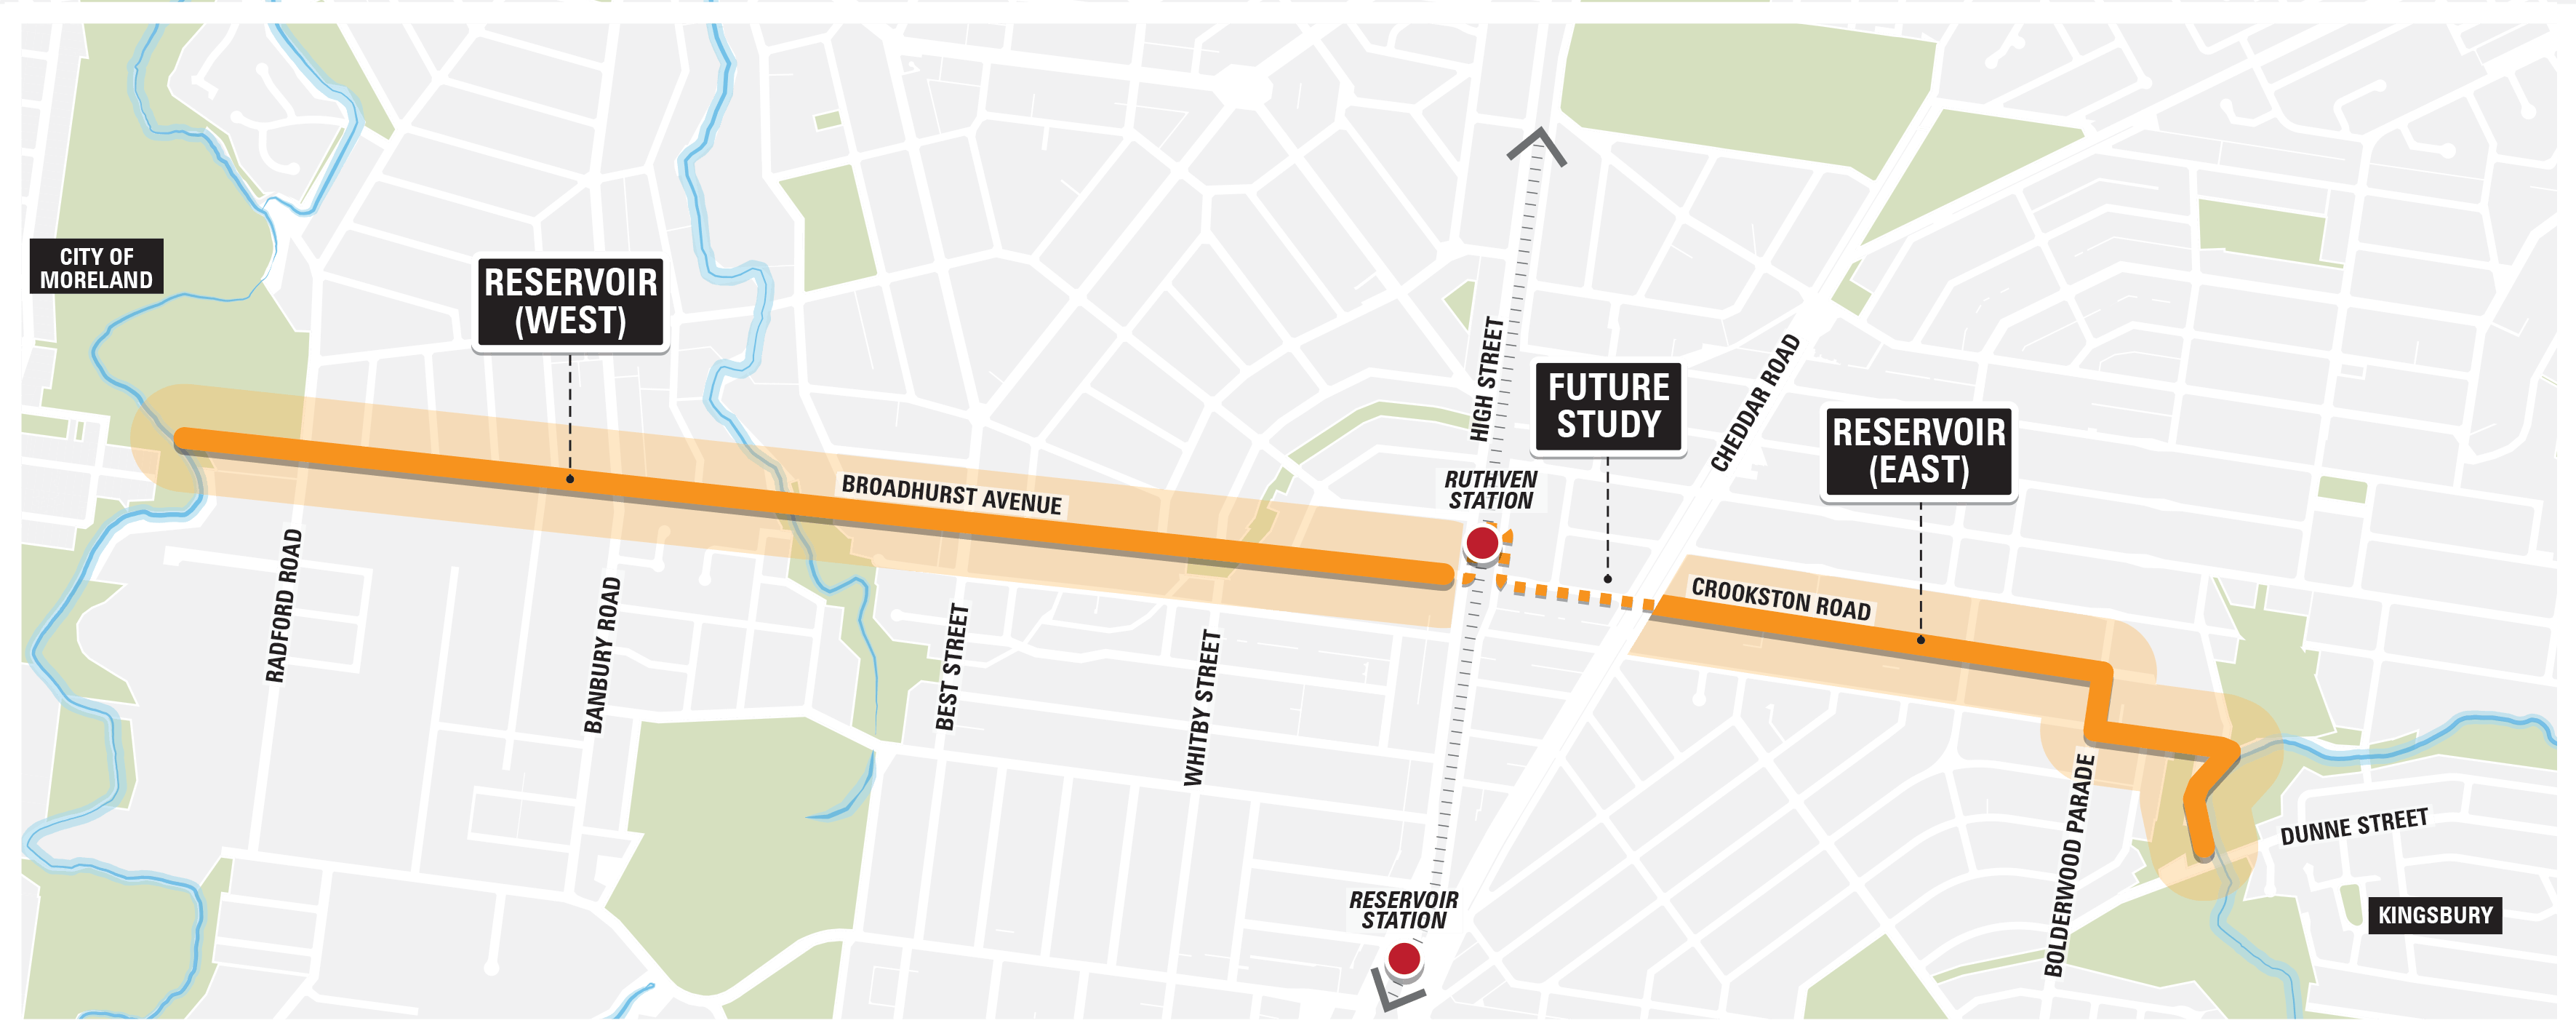 Map of Northern Reservoir Corridor, including Broadhurst Avenue from the Merri Creek to High Street, and Crookston Road from Cheddar Road to the Darebin Creek.